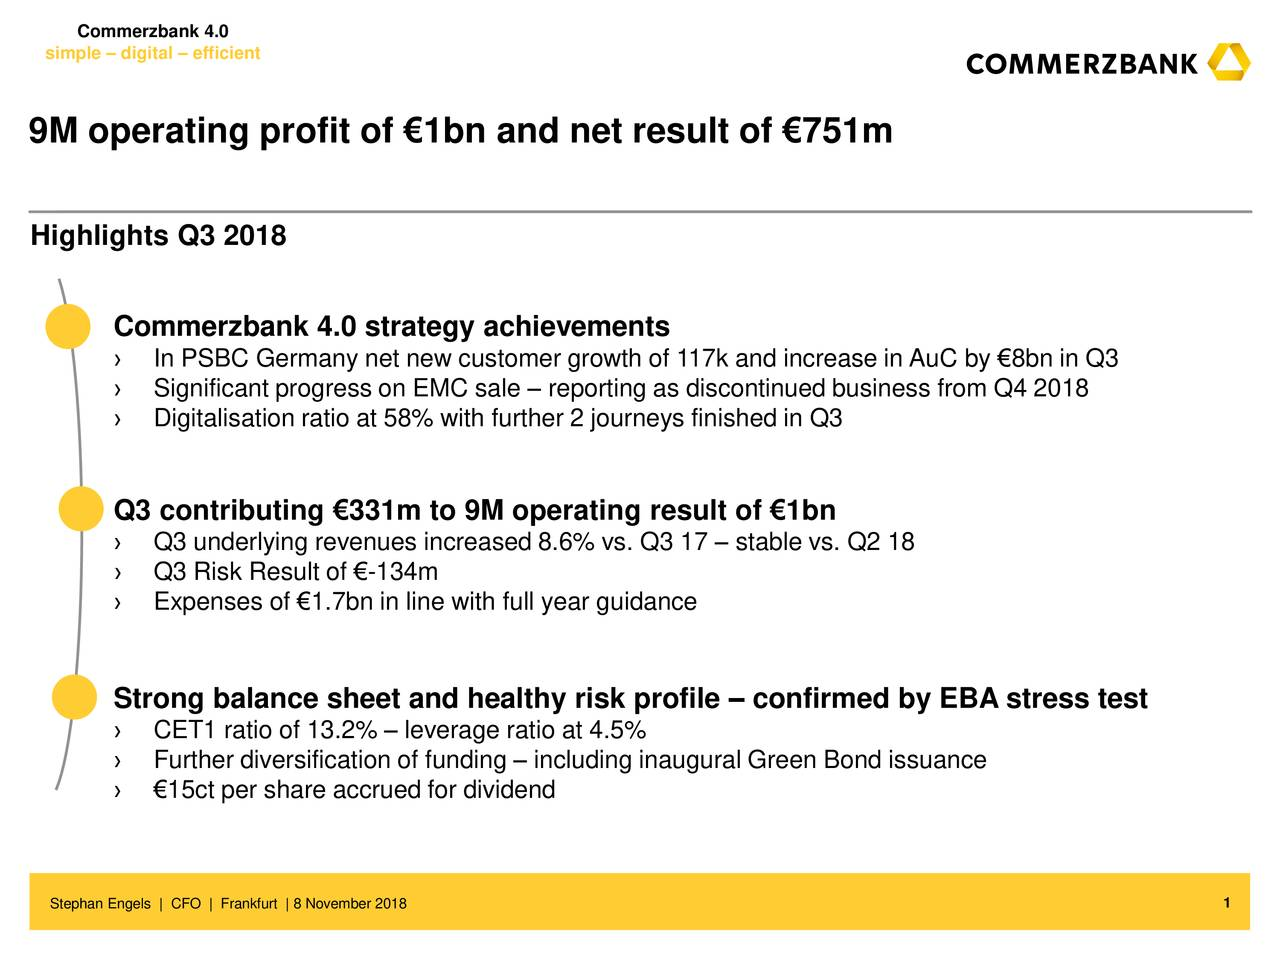 simple – digital – efficient 9M operating profit of €1bn and net result of €751m Highlights Q3 2018 strategy achievements › In PSBC Germany net new customer growth of 117k and increase in AuC by €8bn in Q3 › Significant progress on EMC sale – reporting as discontinued business from Q4 2018 › Digitalisation ratio at 58% with further 2 journeys finished in Q3 Q3 contributing €331m to 9M operating result of €1bn › Q3 underlying revenues increased 8.6% vs. Q3 17 – stable vs. Q2 18 › Q3 Risk Result of €-134m › Expenses of €1.7bn in line with full year guidance Strong balance sheet and healthy risk profile – confirmed by EBA stress test › CET1 ratio of 13.2% – leverage ratio at 4.5% › Further diversification of funding – including inaugural Green Bond issuance › €15ct per share accrued for dividend Stephan Engels | CFO | Frankfurt | 8 November 2018 1